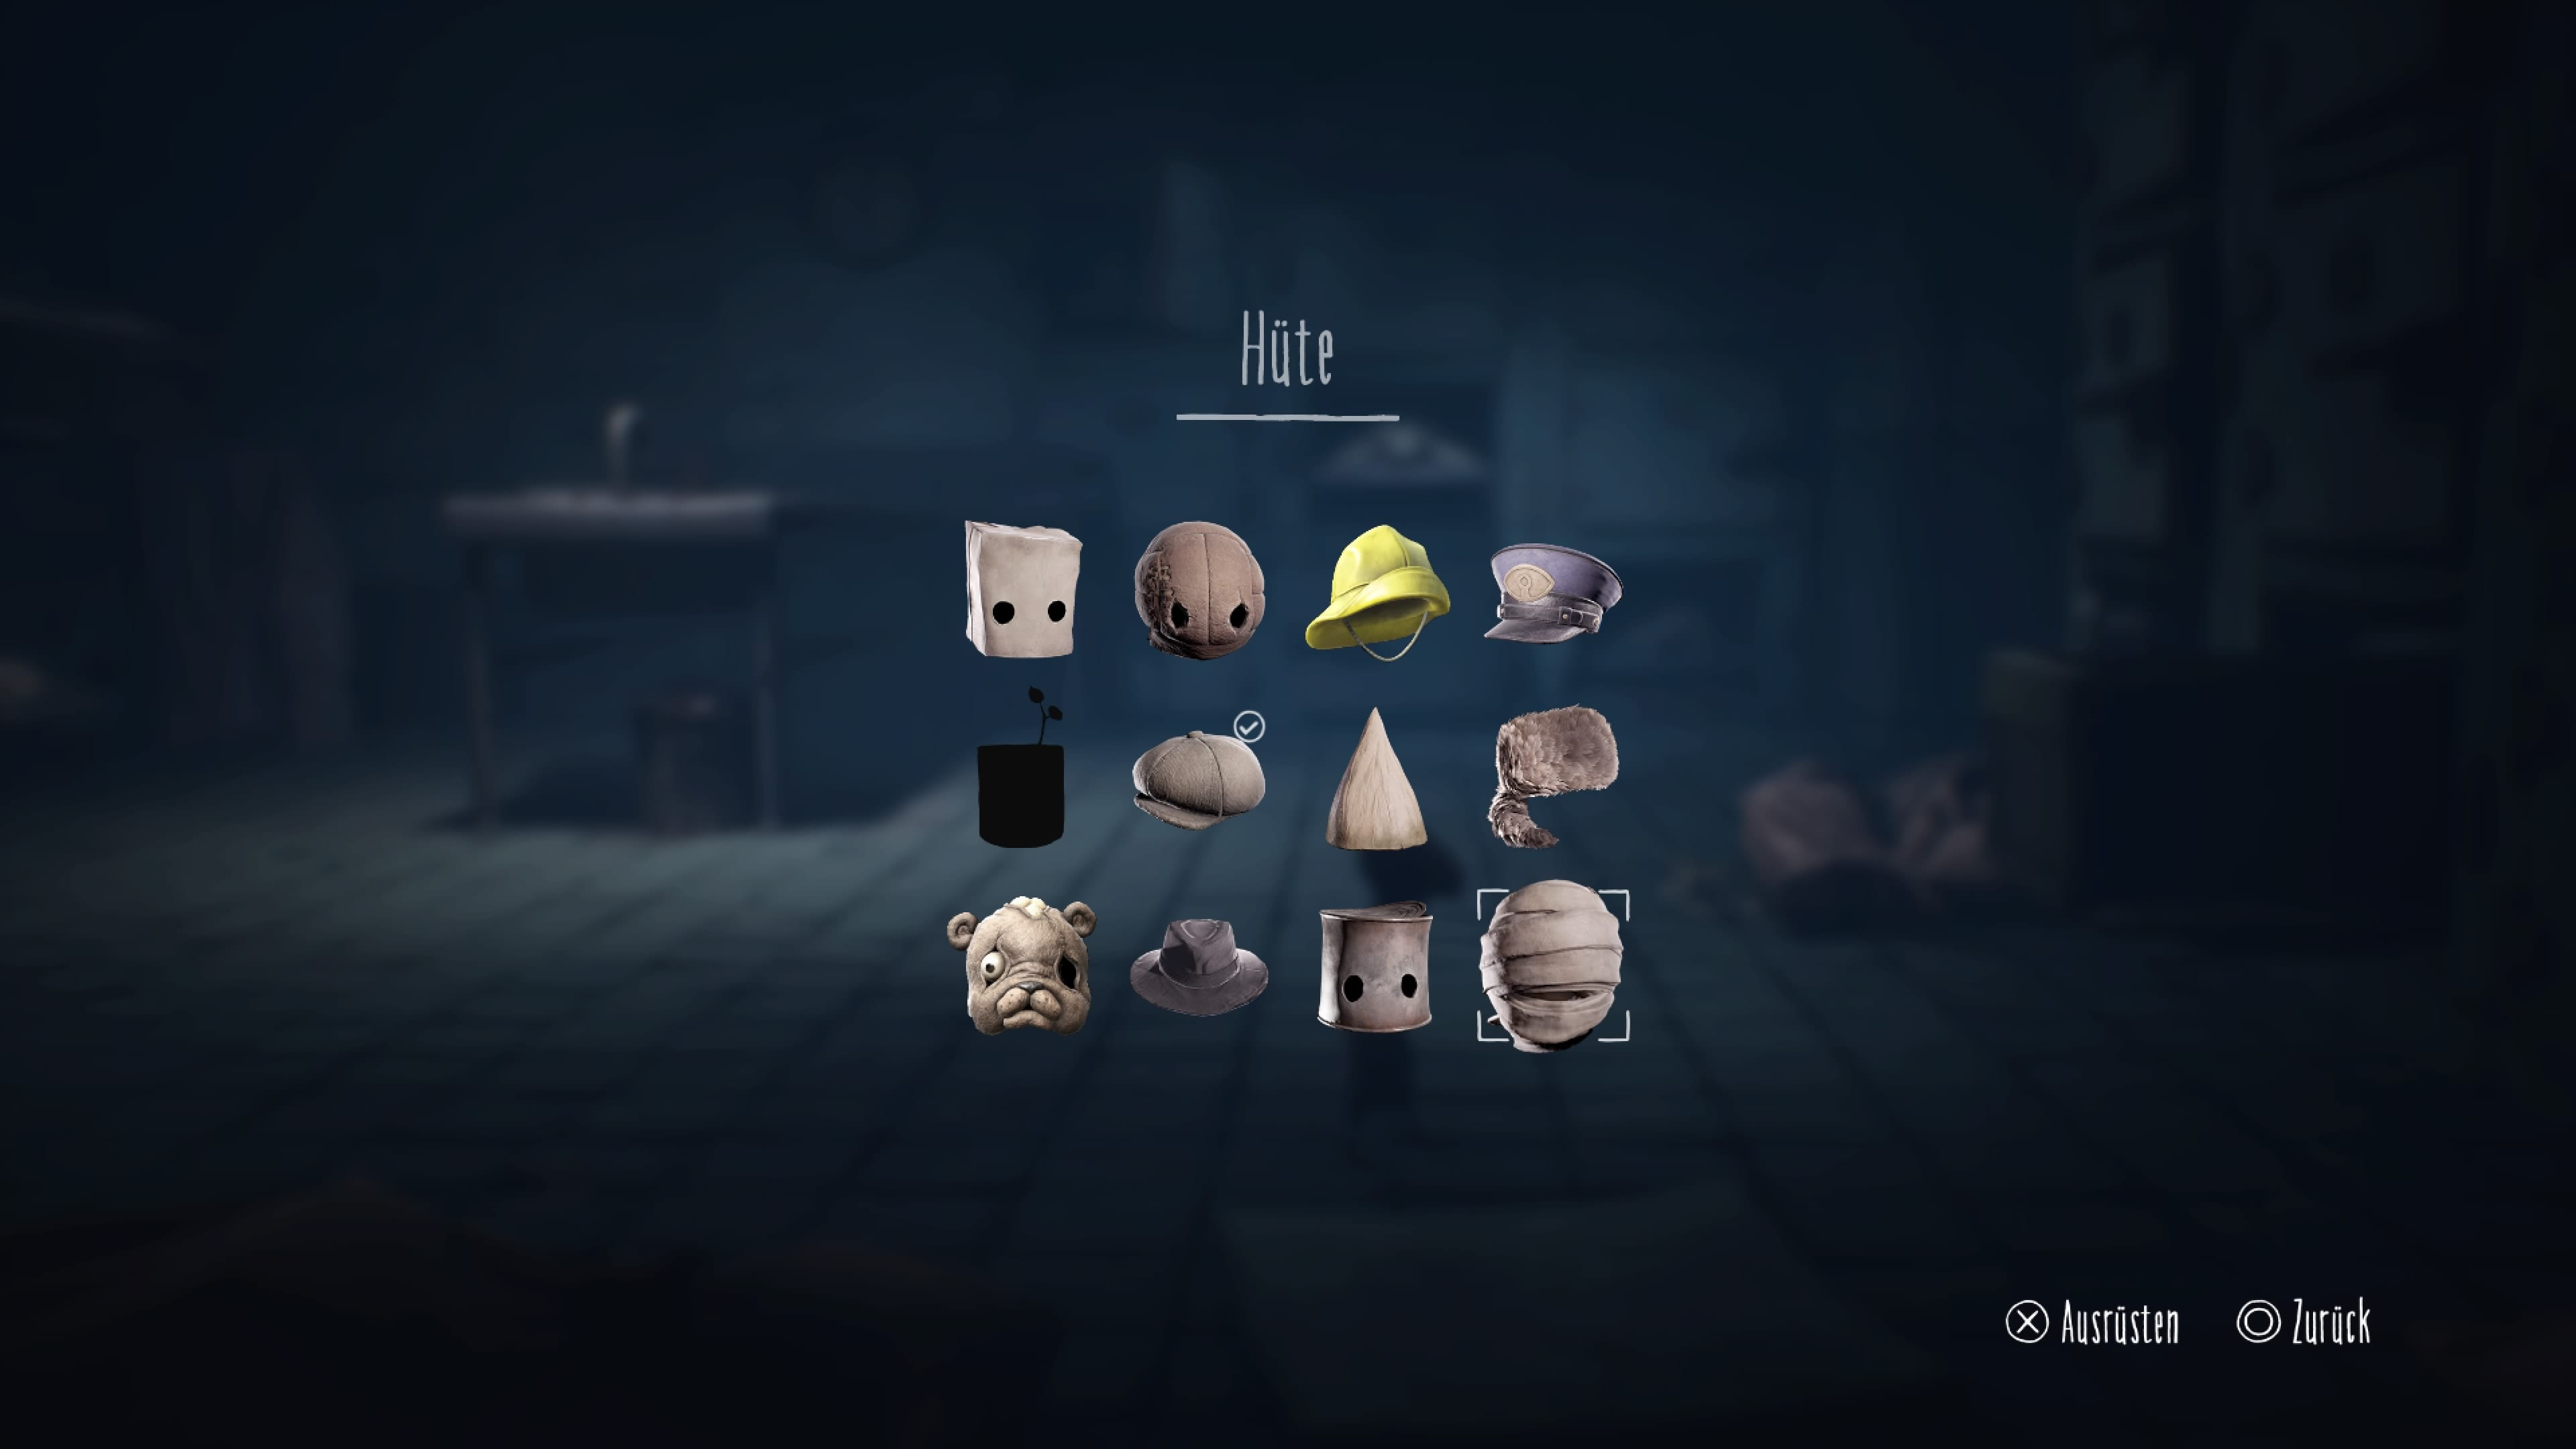 Little Nightmares 2 Hut tut gut Trophäe